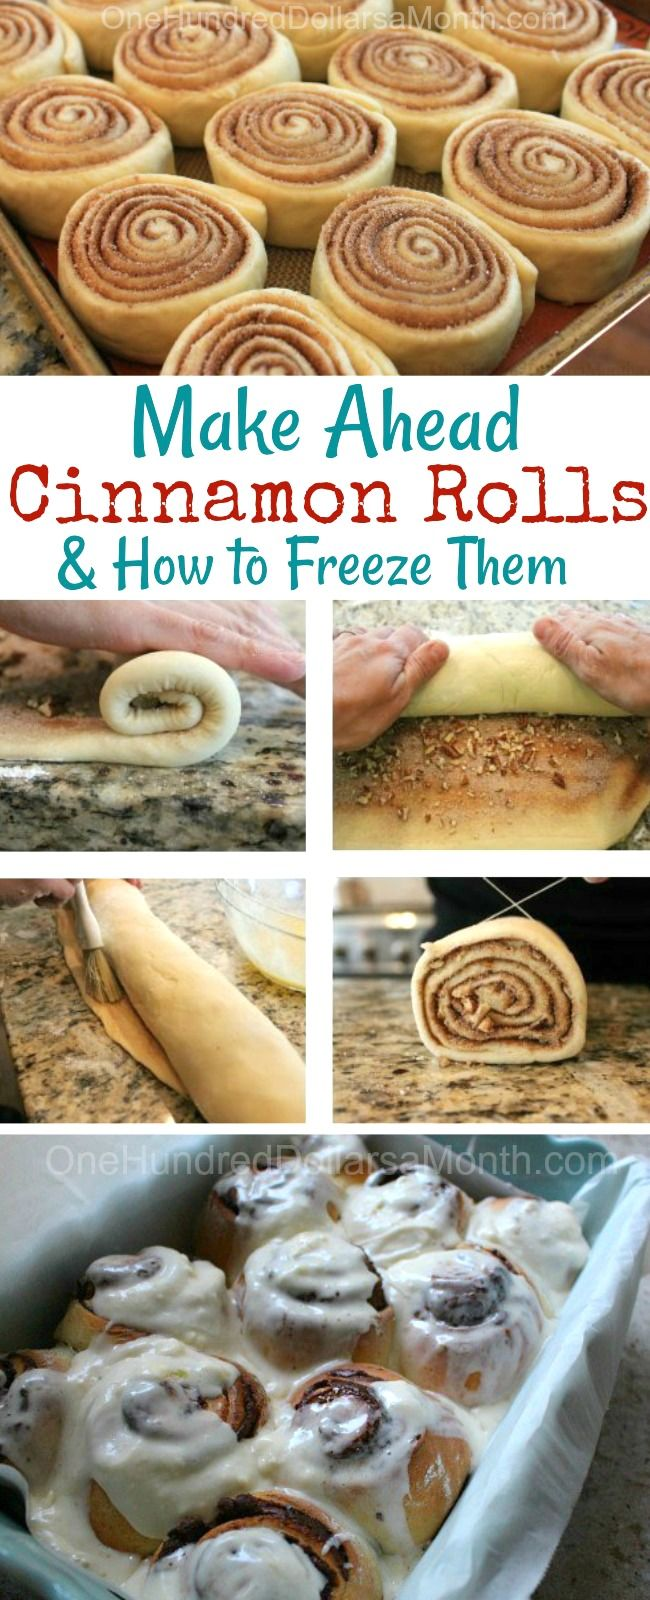 The Best Way to Freeze Cinnamon Rolls + Recipe - One Hundred Dollars a Month